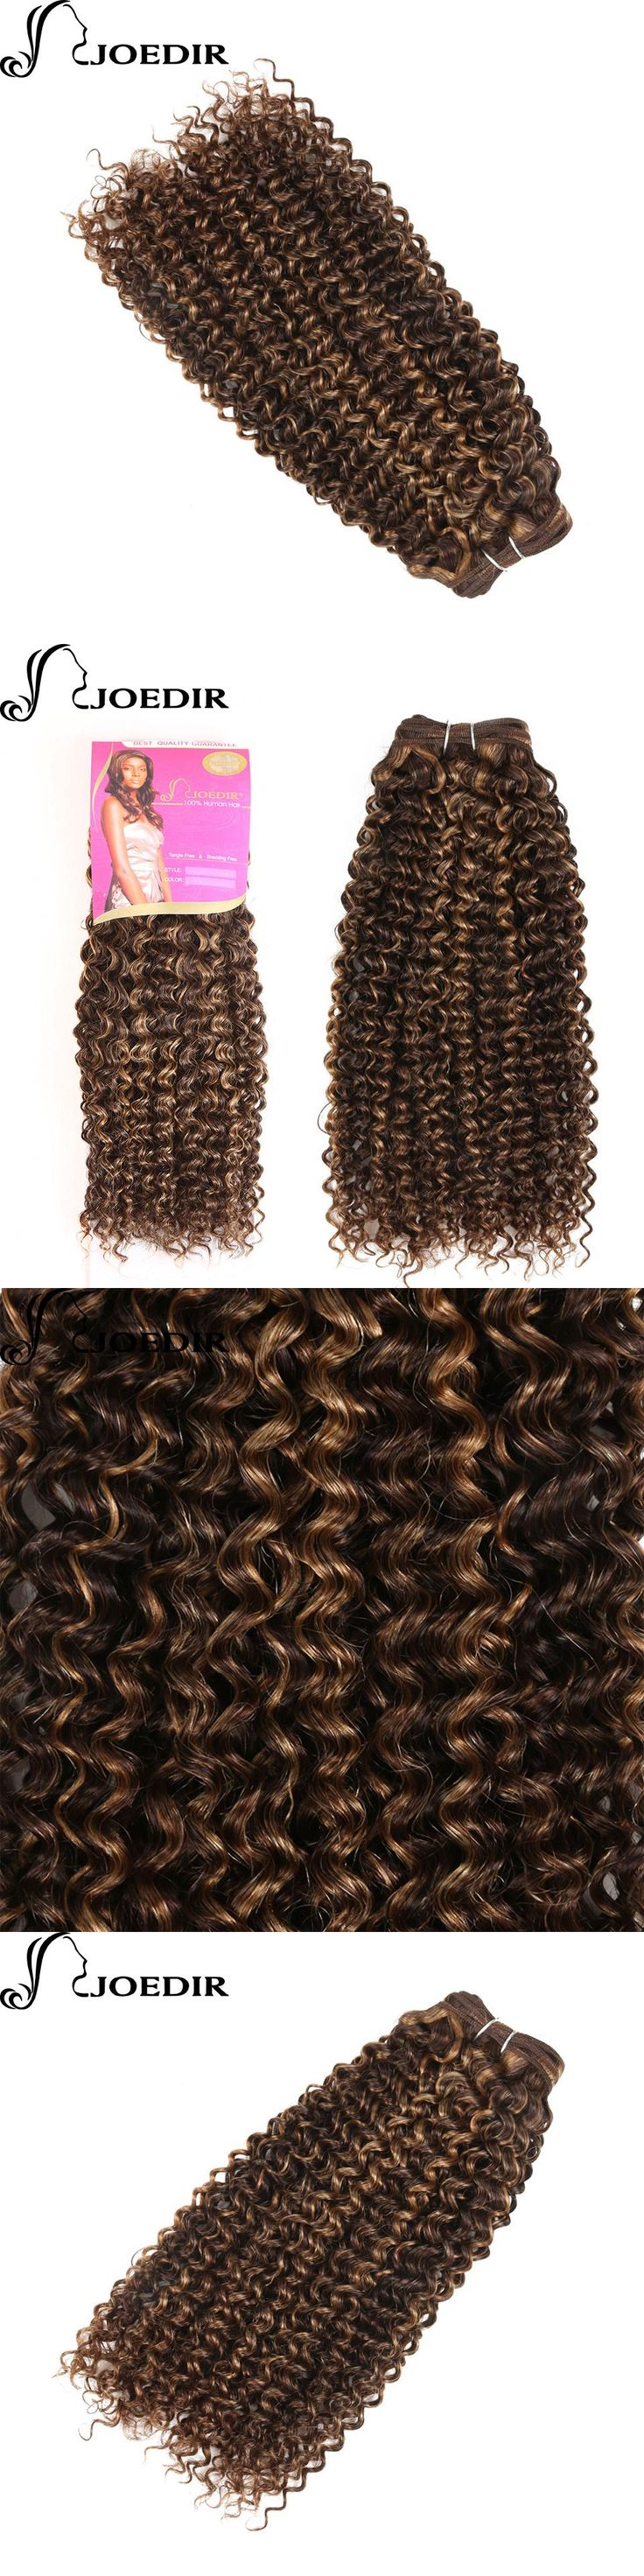 Joedir Pre-Colored Indian Curly Hair Weave Brown Blonde Human Hair Bundles P427 Afro Kinky Curly Hair Extensions 100g P427